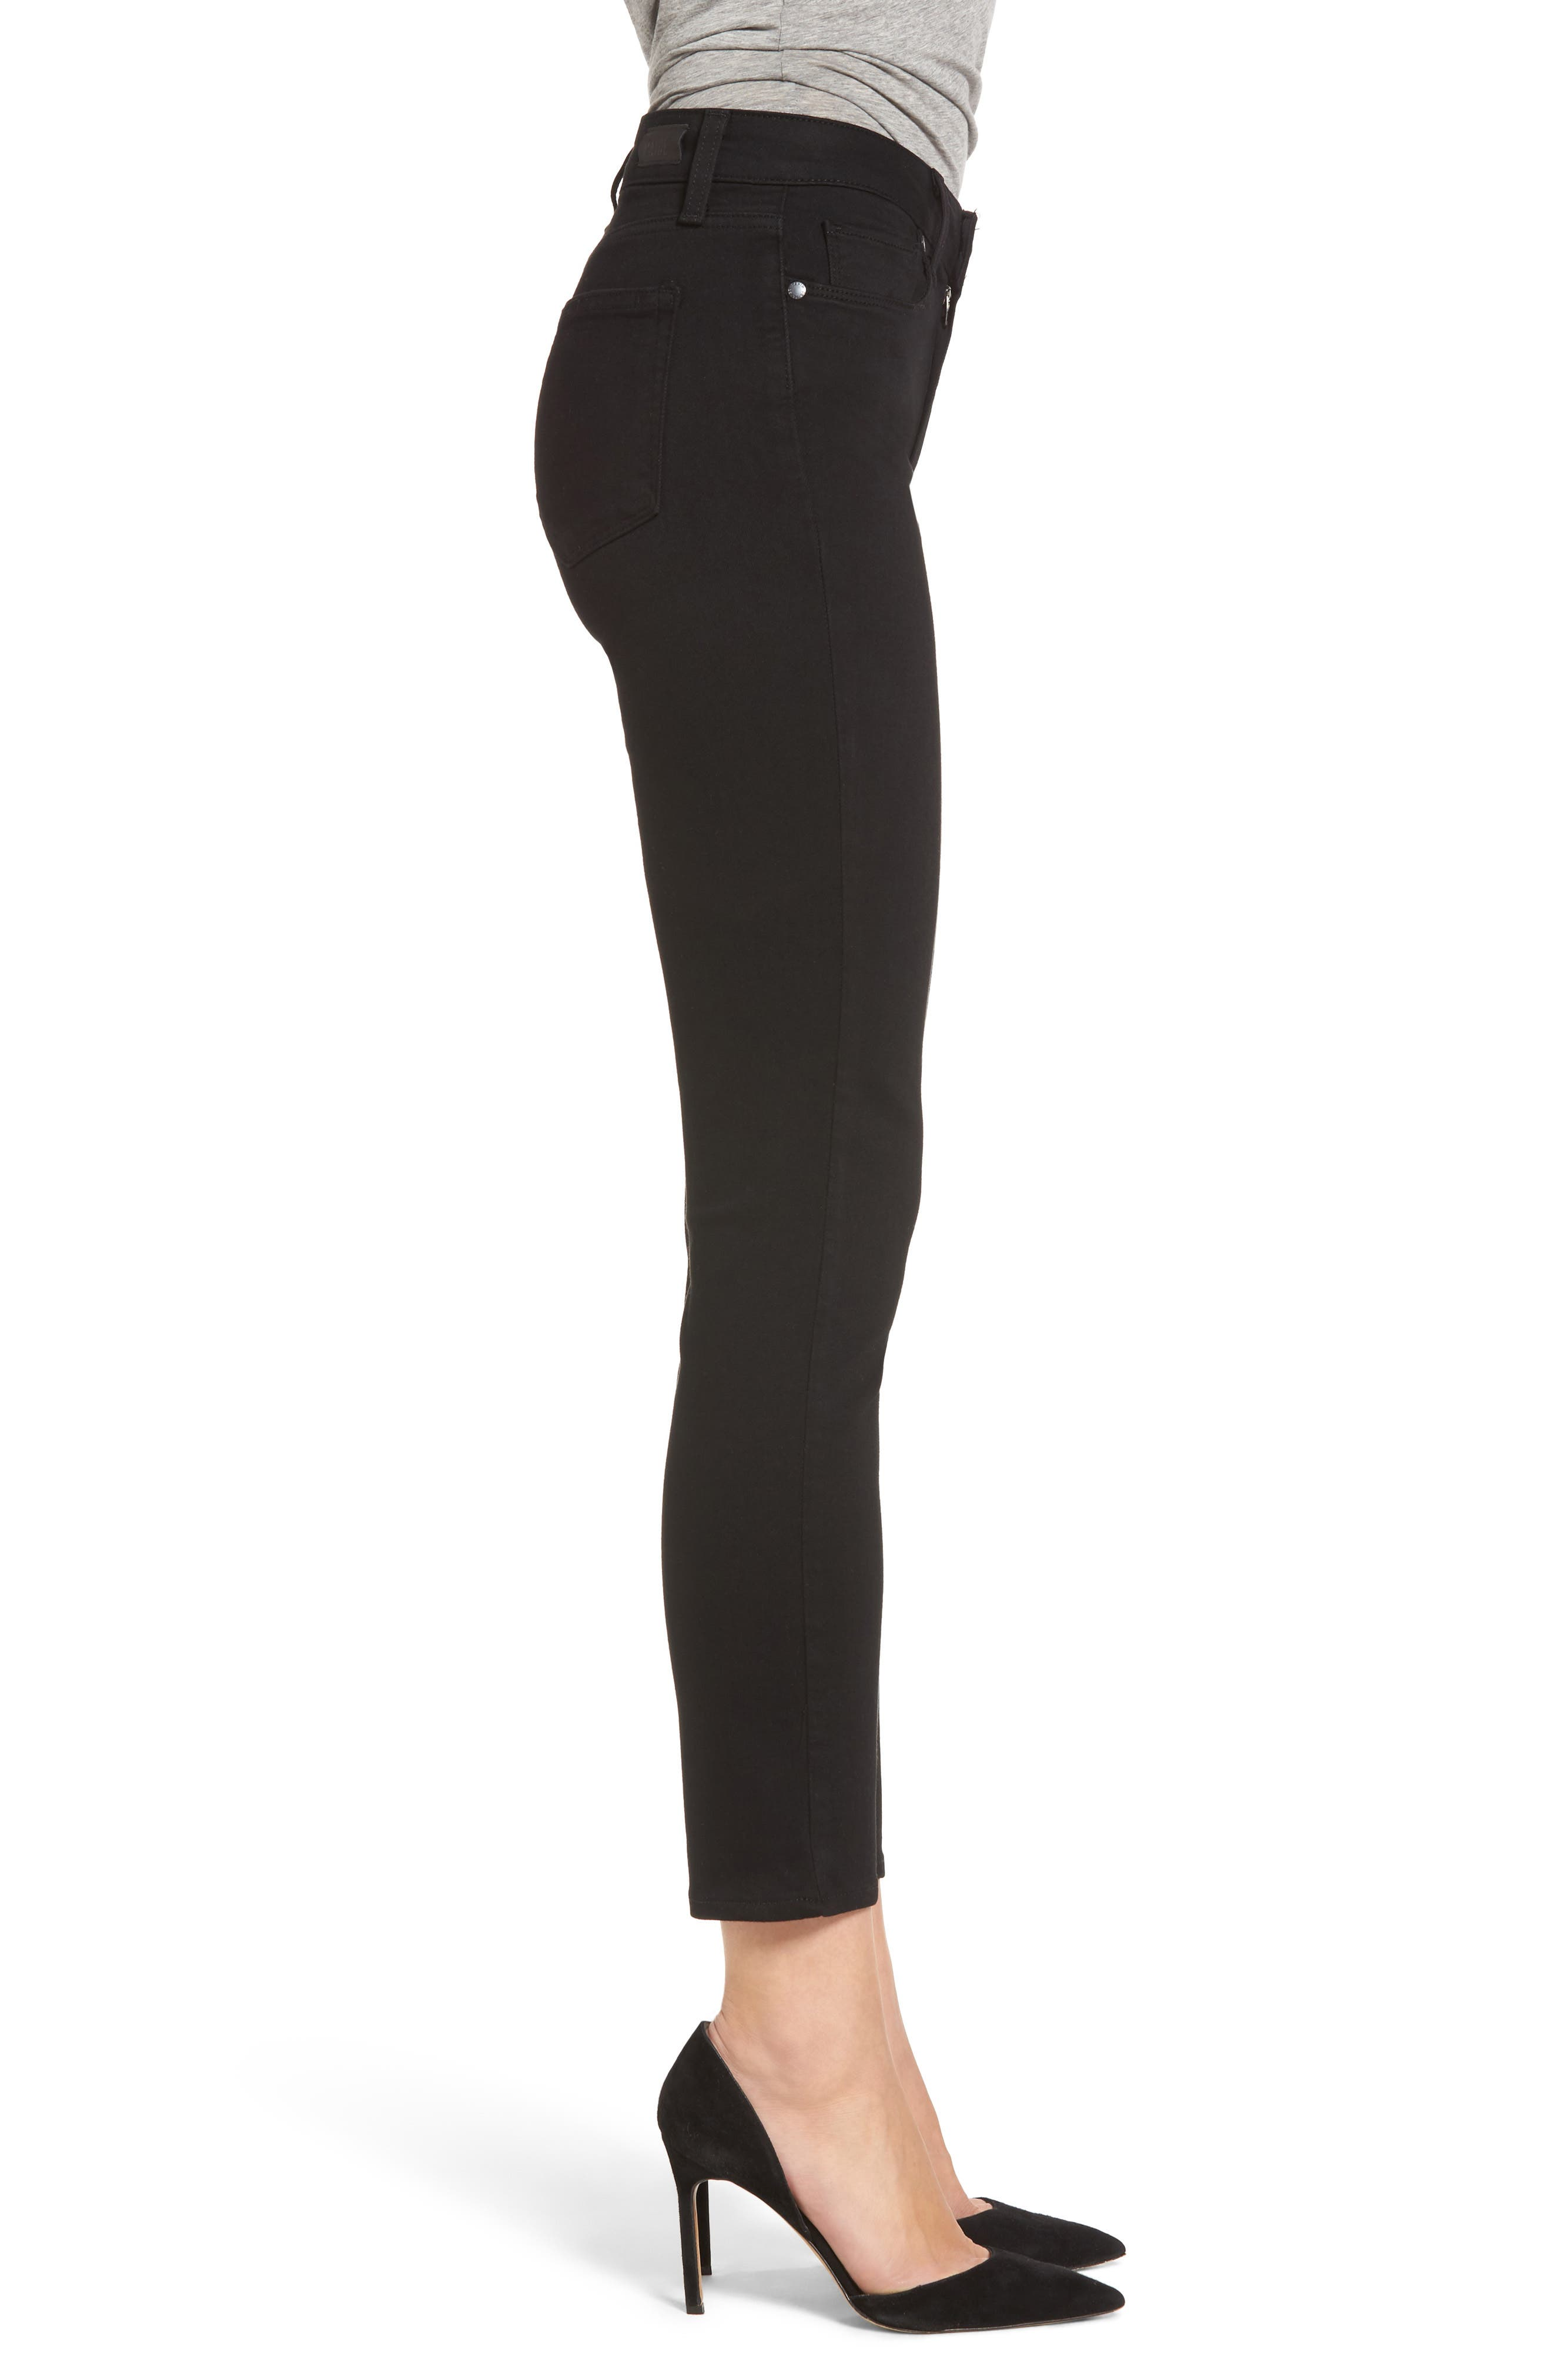 Hoxton Transcend High Waist Crop Skinny Jeans,                             Alternate thumbnail 3, color,                             BLACK SHADOW